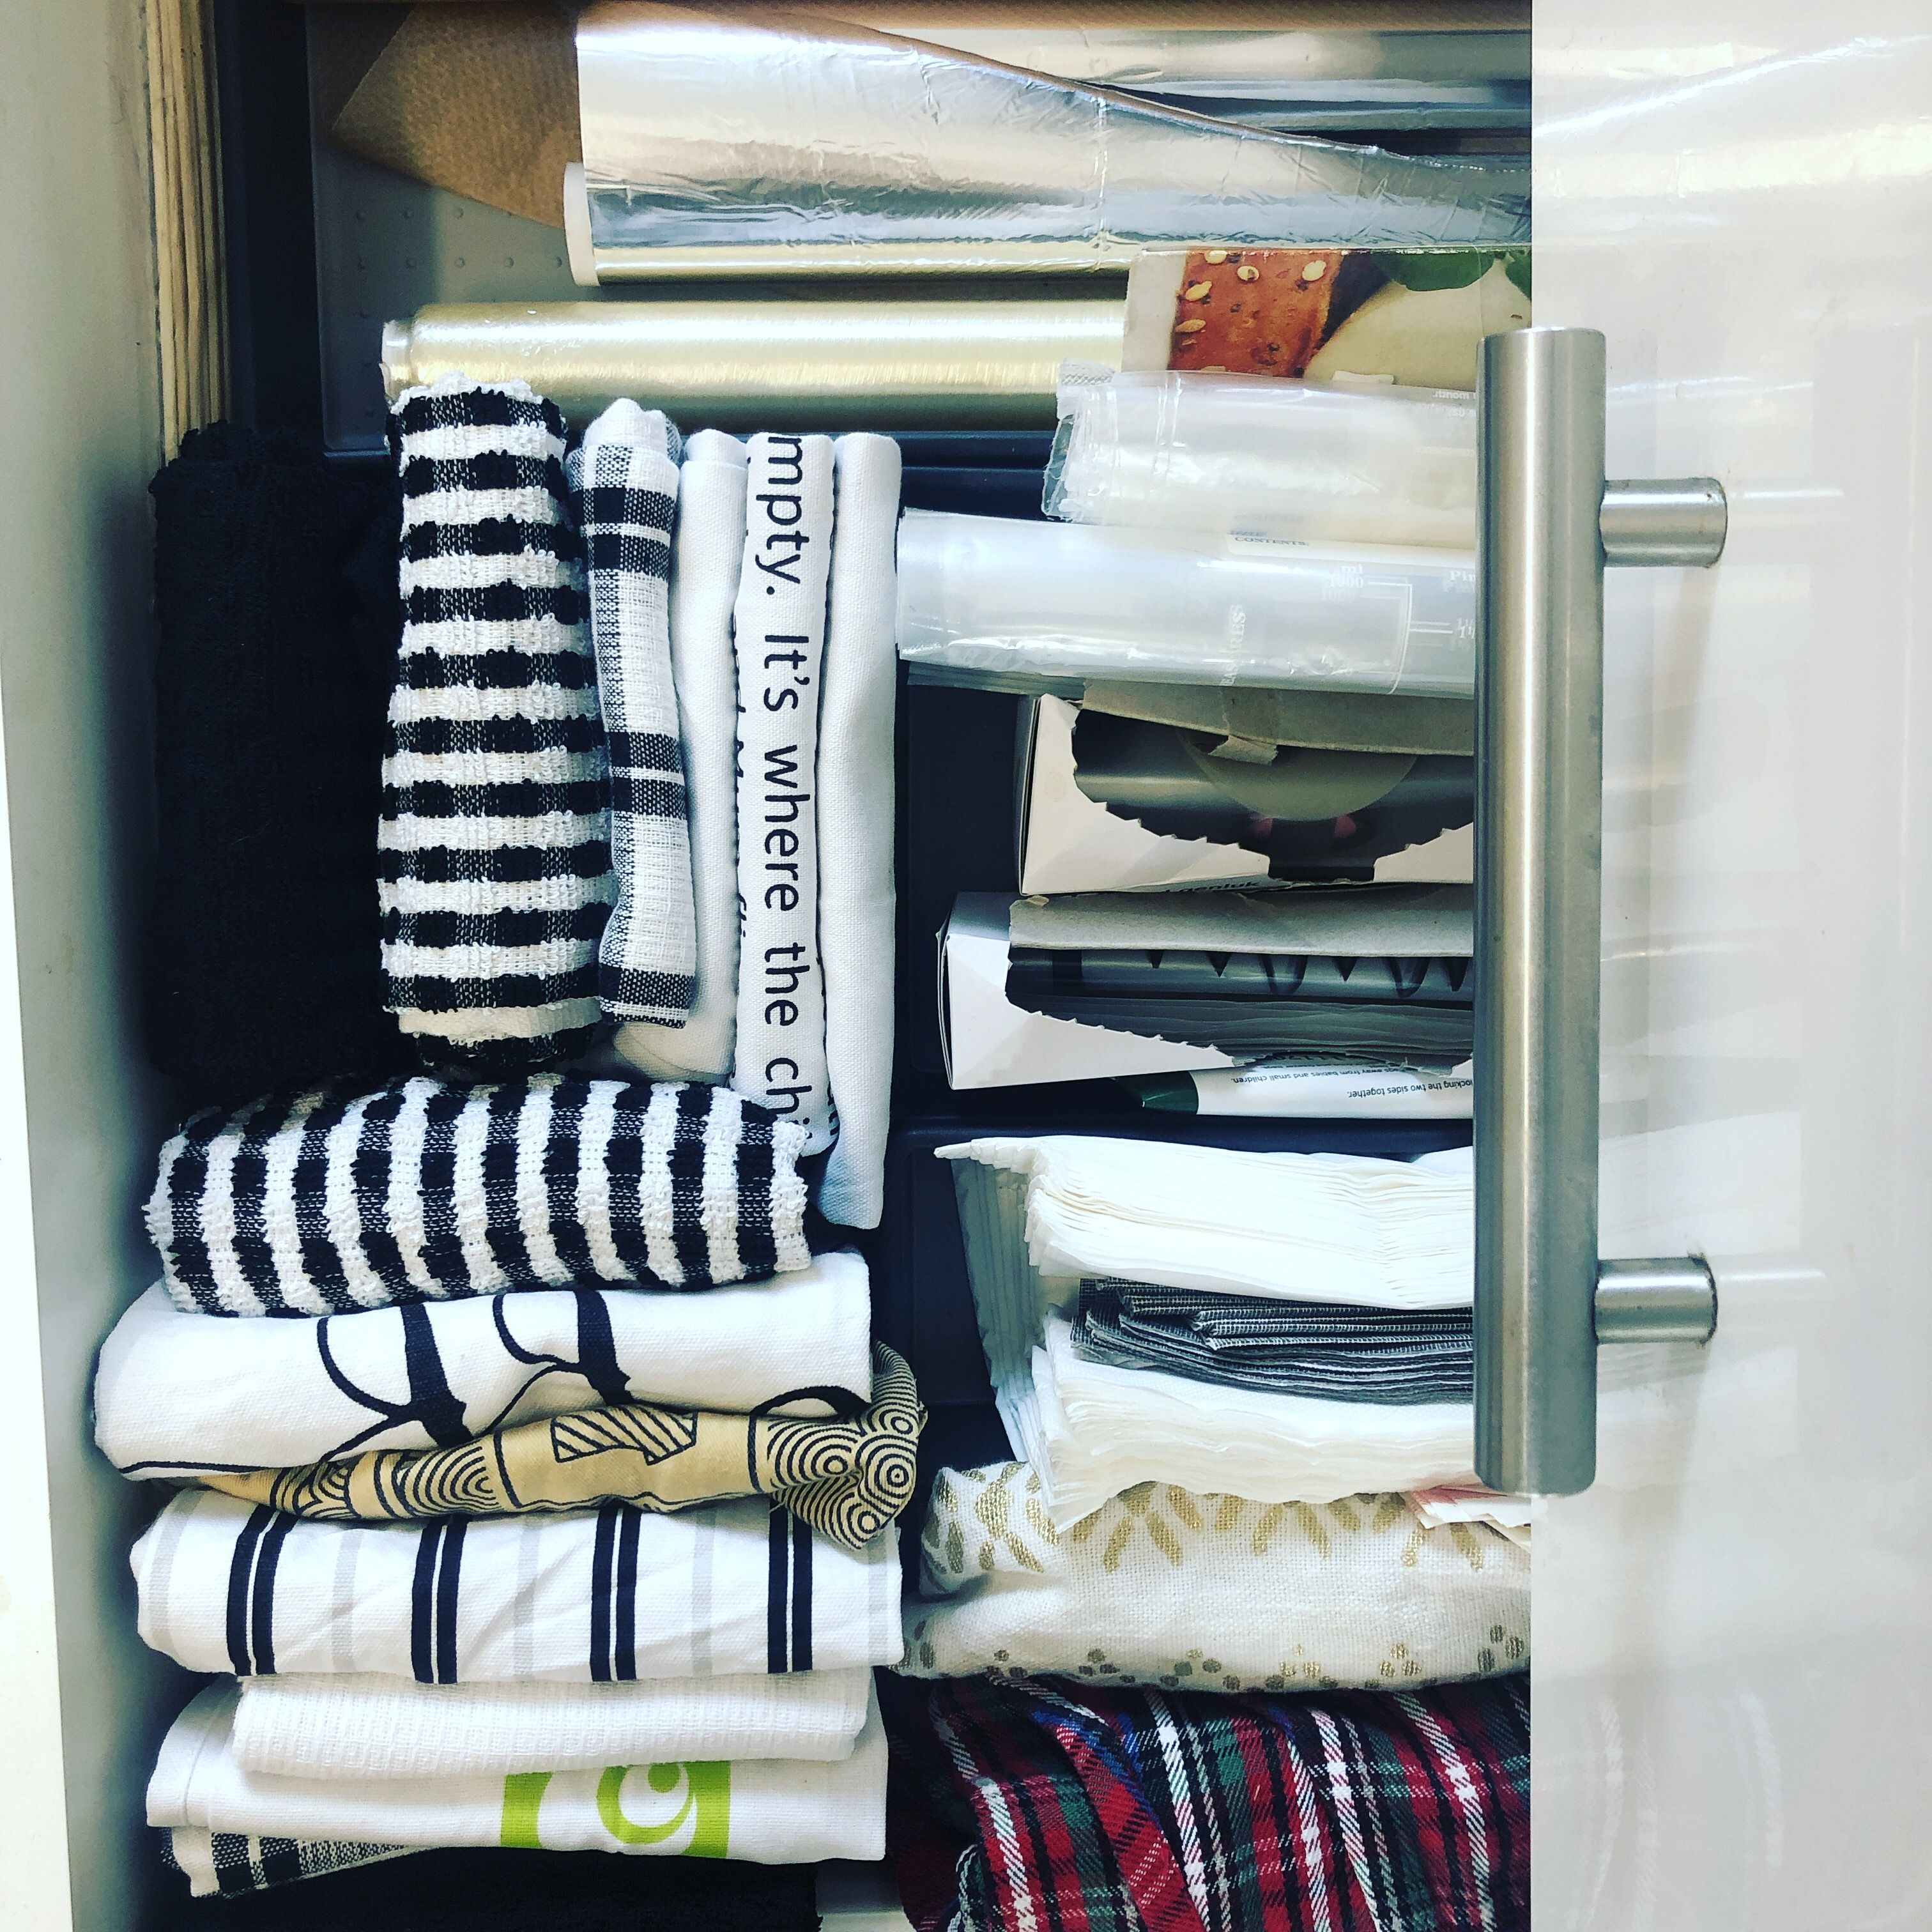 Tidy Your Kitchen Draws By Adding Draw Sorters And Folding Your